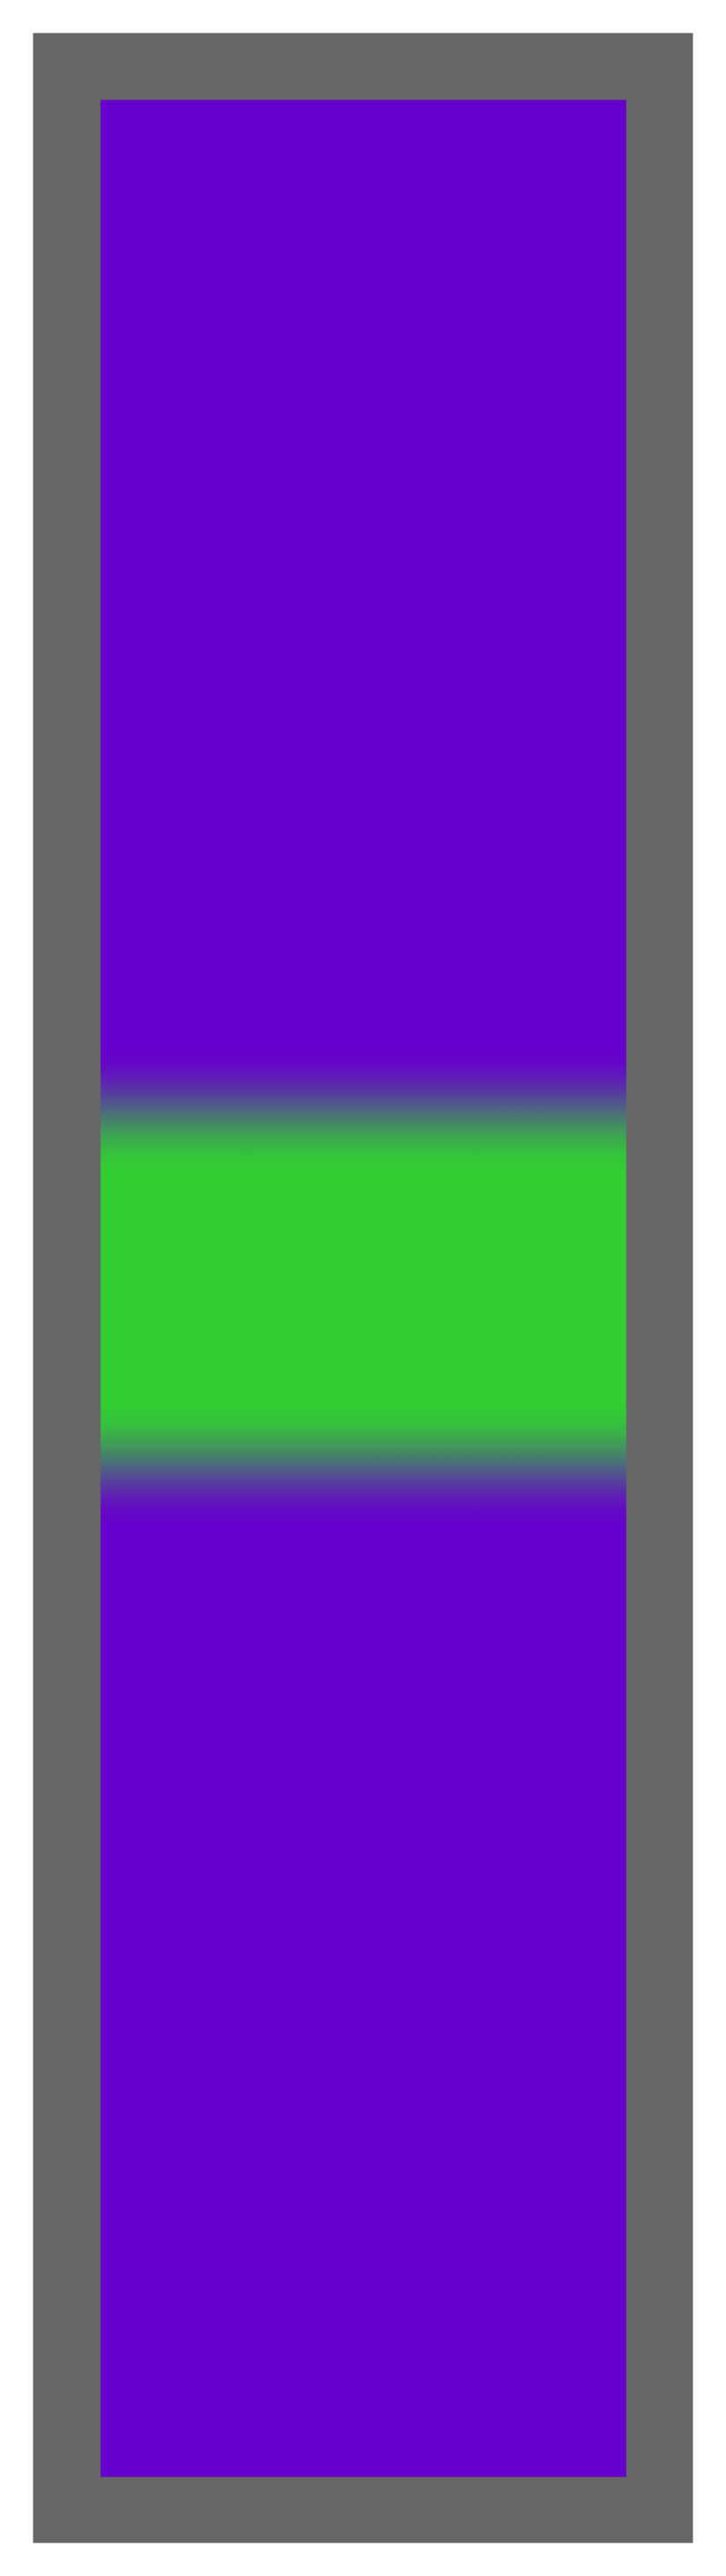 Purple-Lime Green Center Tailless